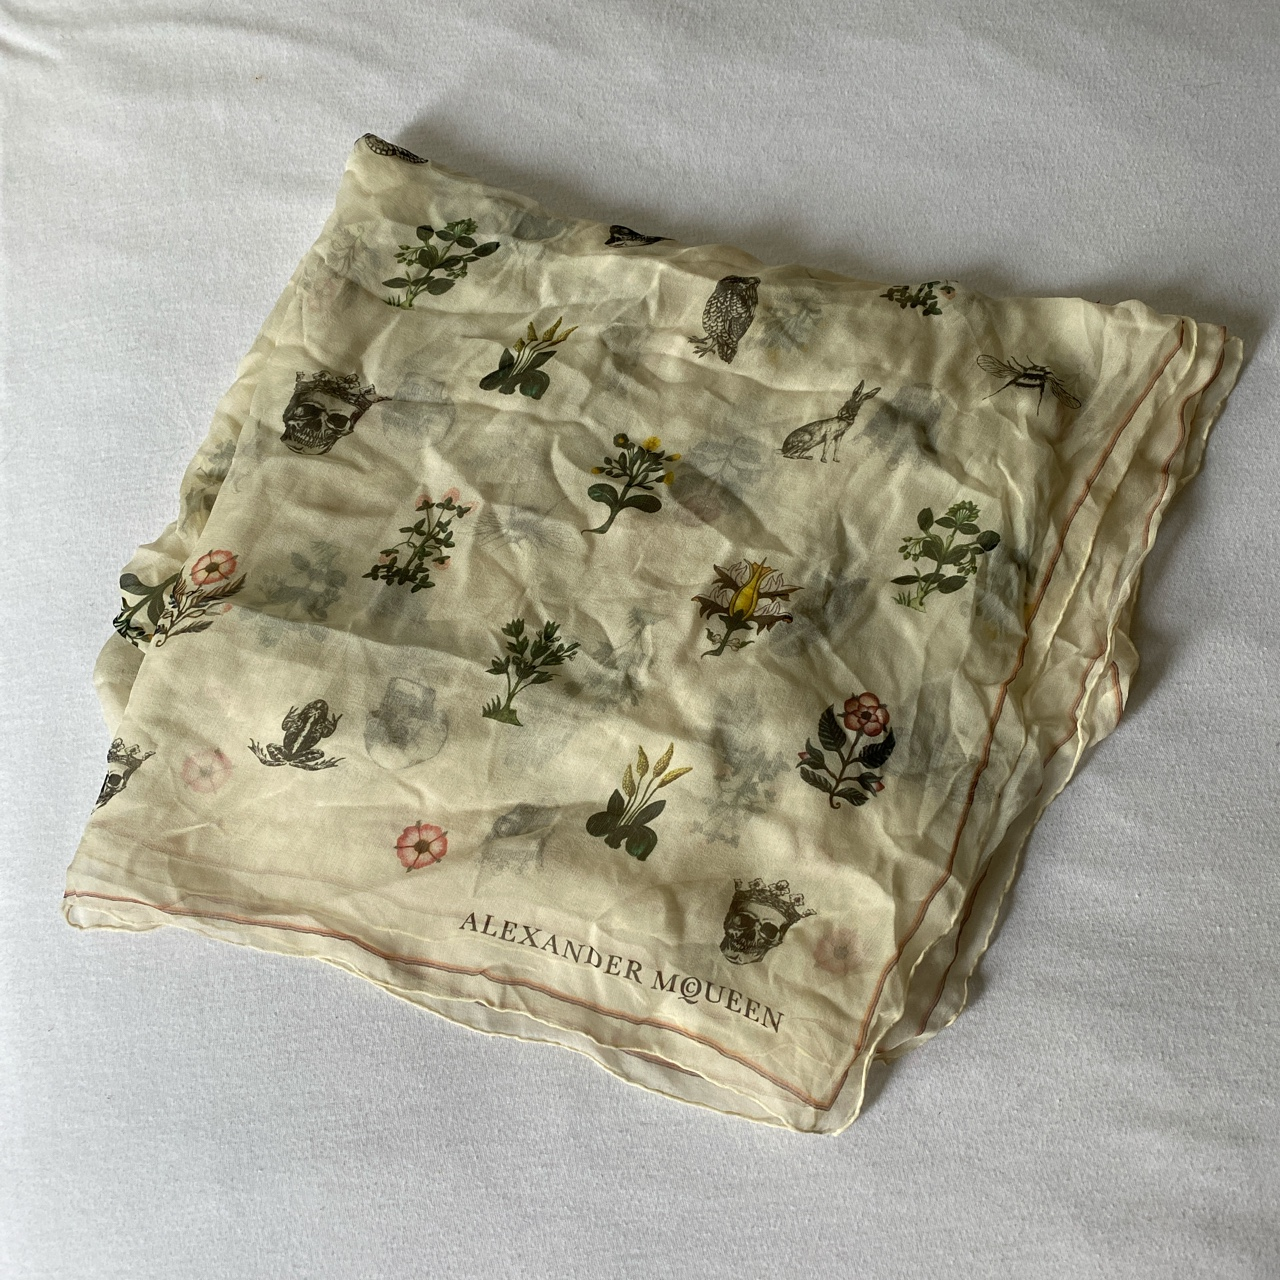 Product Image 1 - Large Alexander McQueen Scarf Vintage